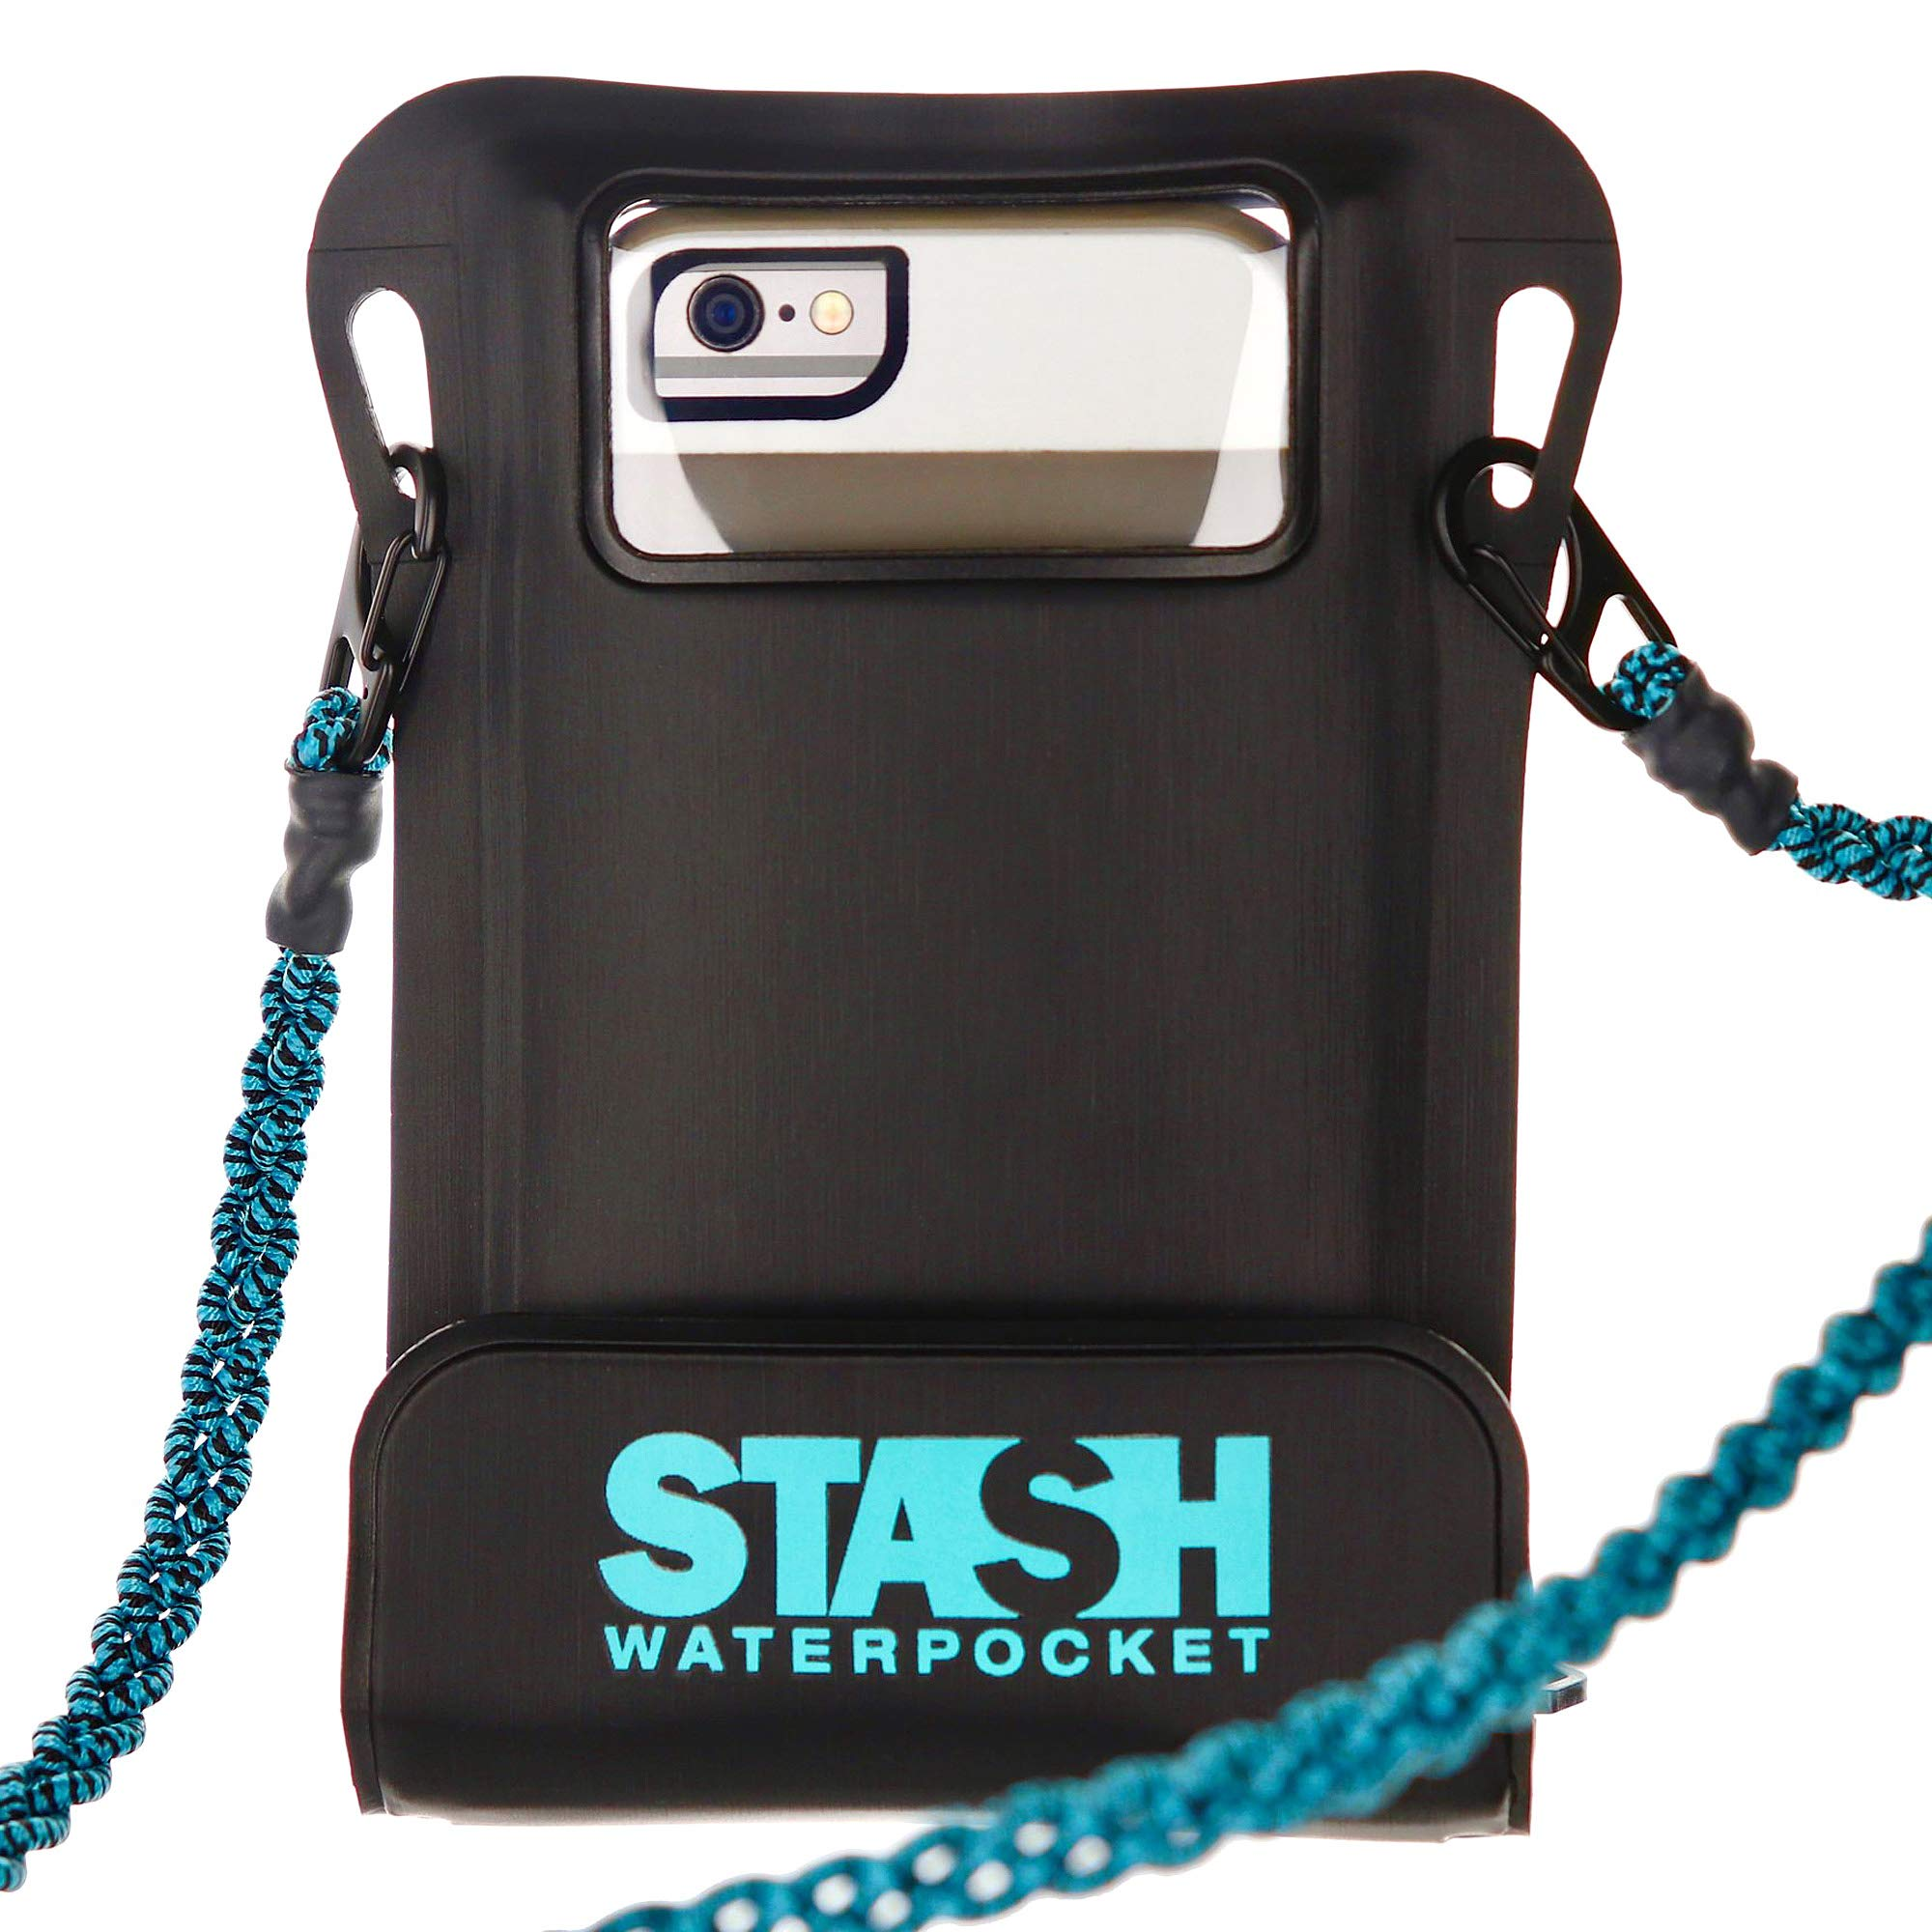 Stash Waterpocket Premium Waterproof Phone Pouch | FOR RECREATIONAL USE Rafting, Fishing, Kayaking, Boating, Snorkeling | For iPhone 6, 6 Plus, 7, 7 Plus, 8, 8 Plus, XS, XS Max, XR, Galaxy S9+, more by Waterpockets